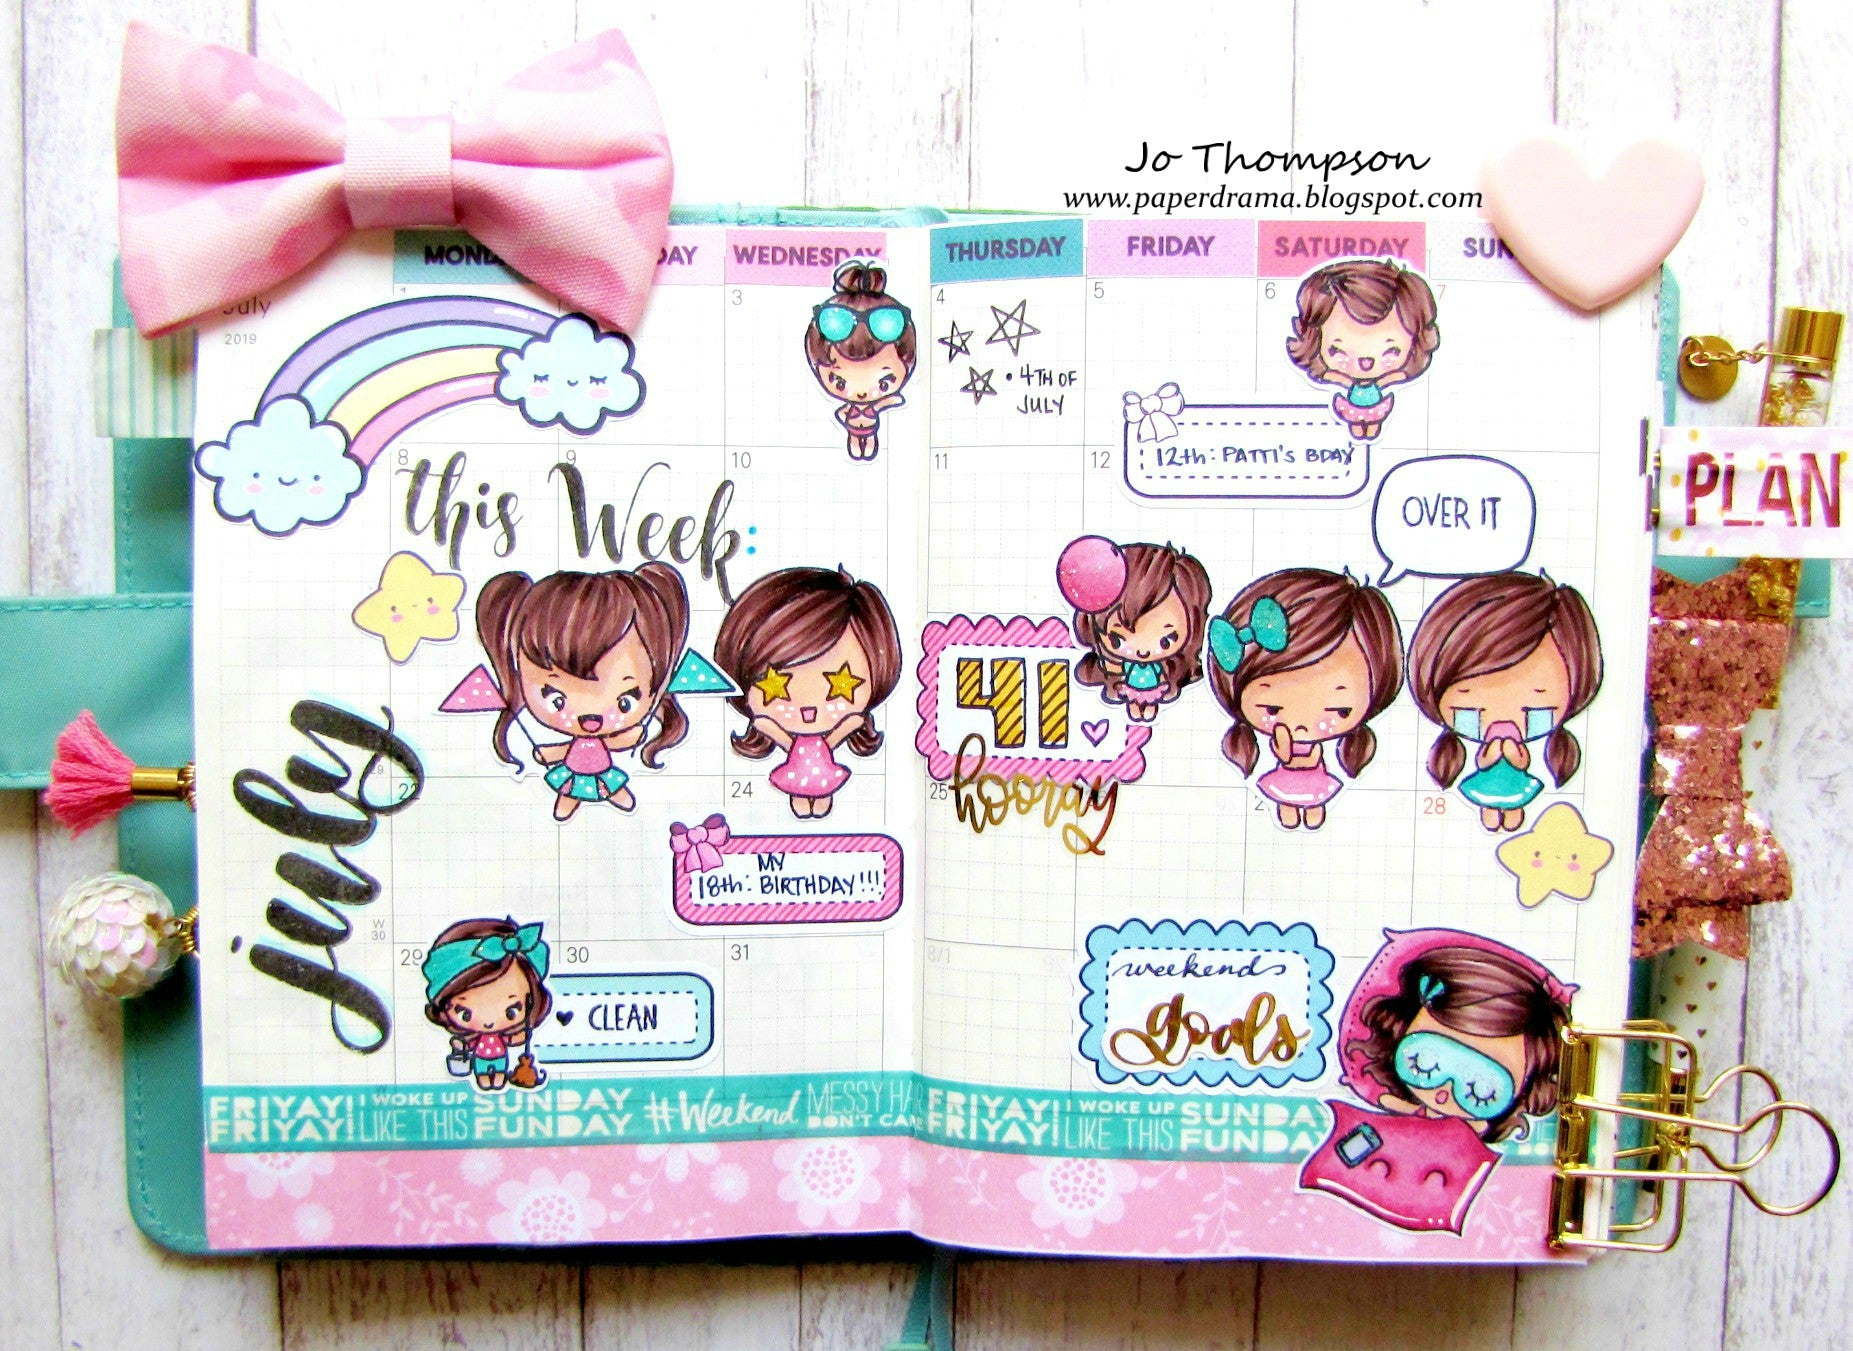 Guest Designer Jo Thompson with her July Planner Page!